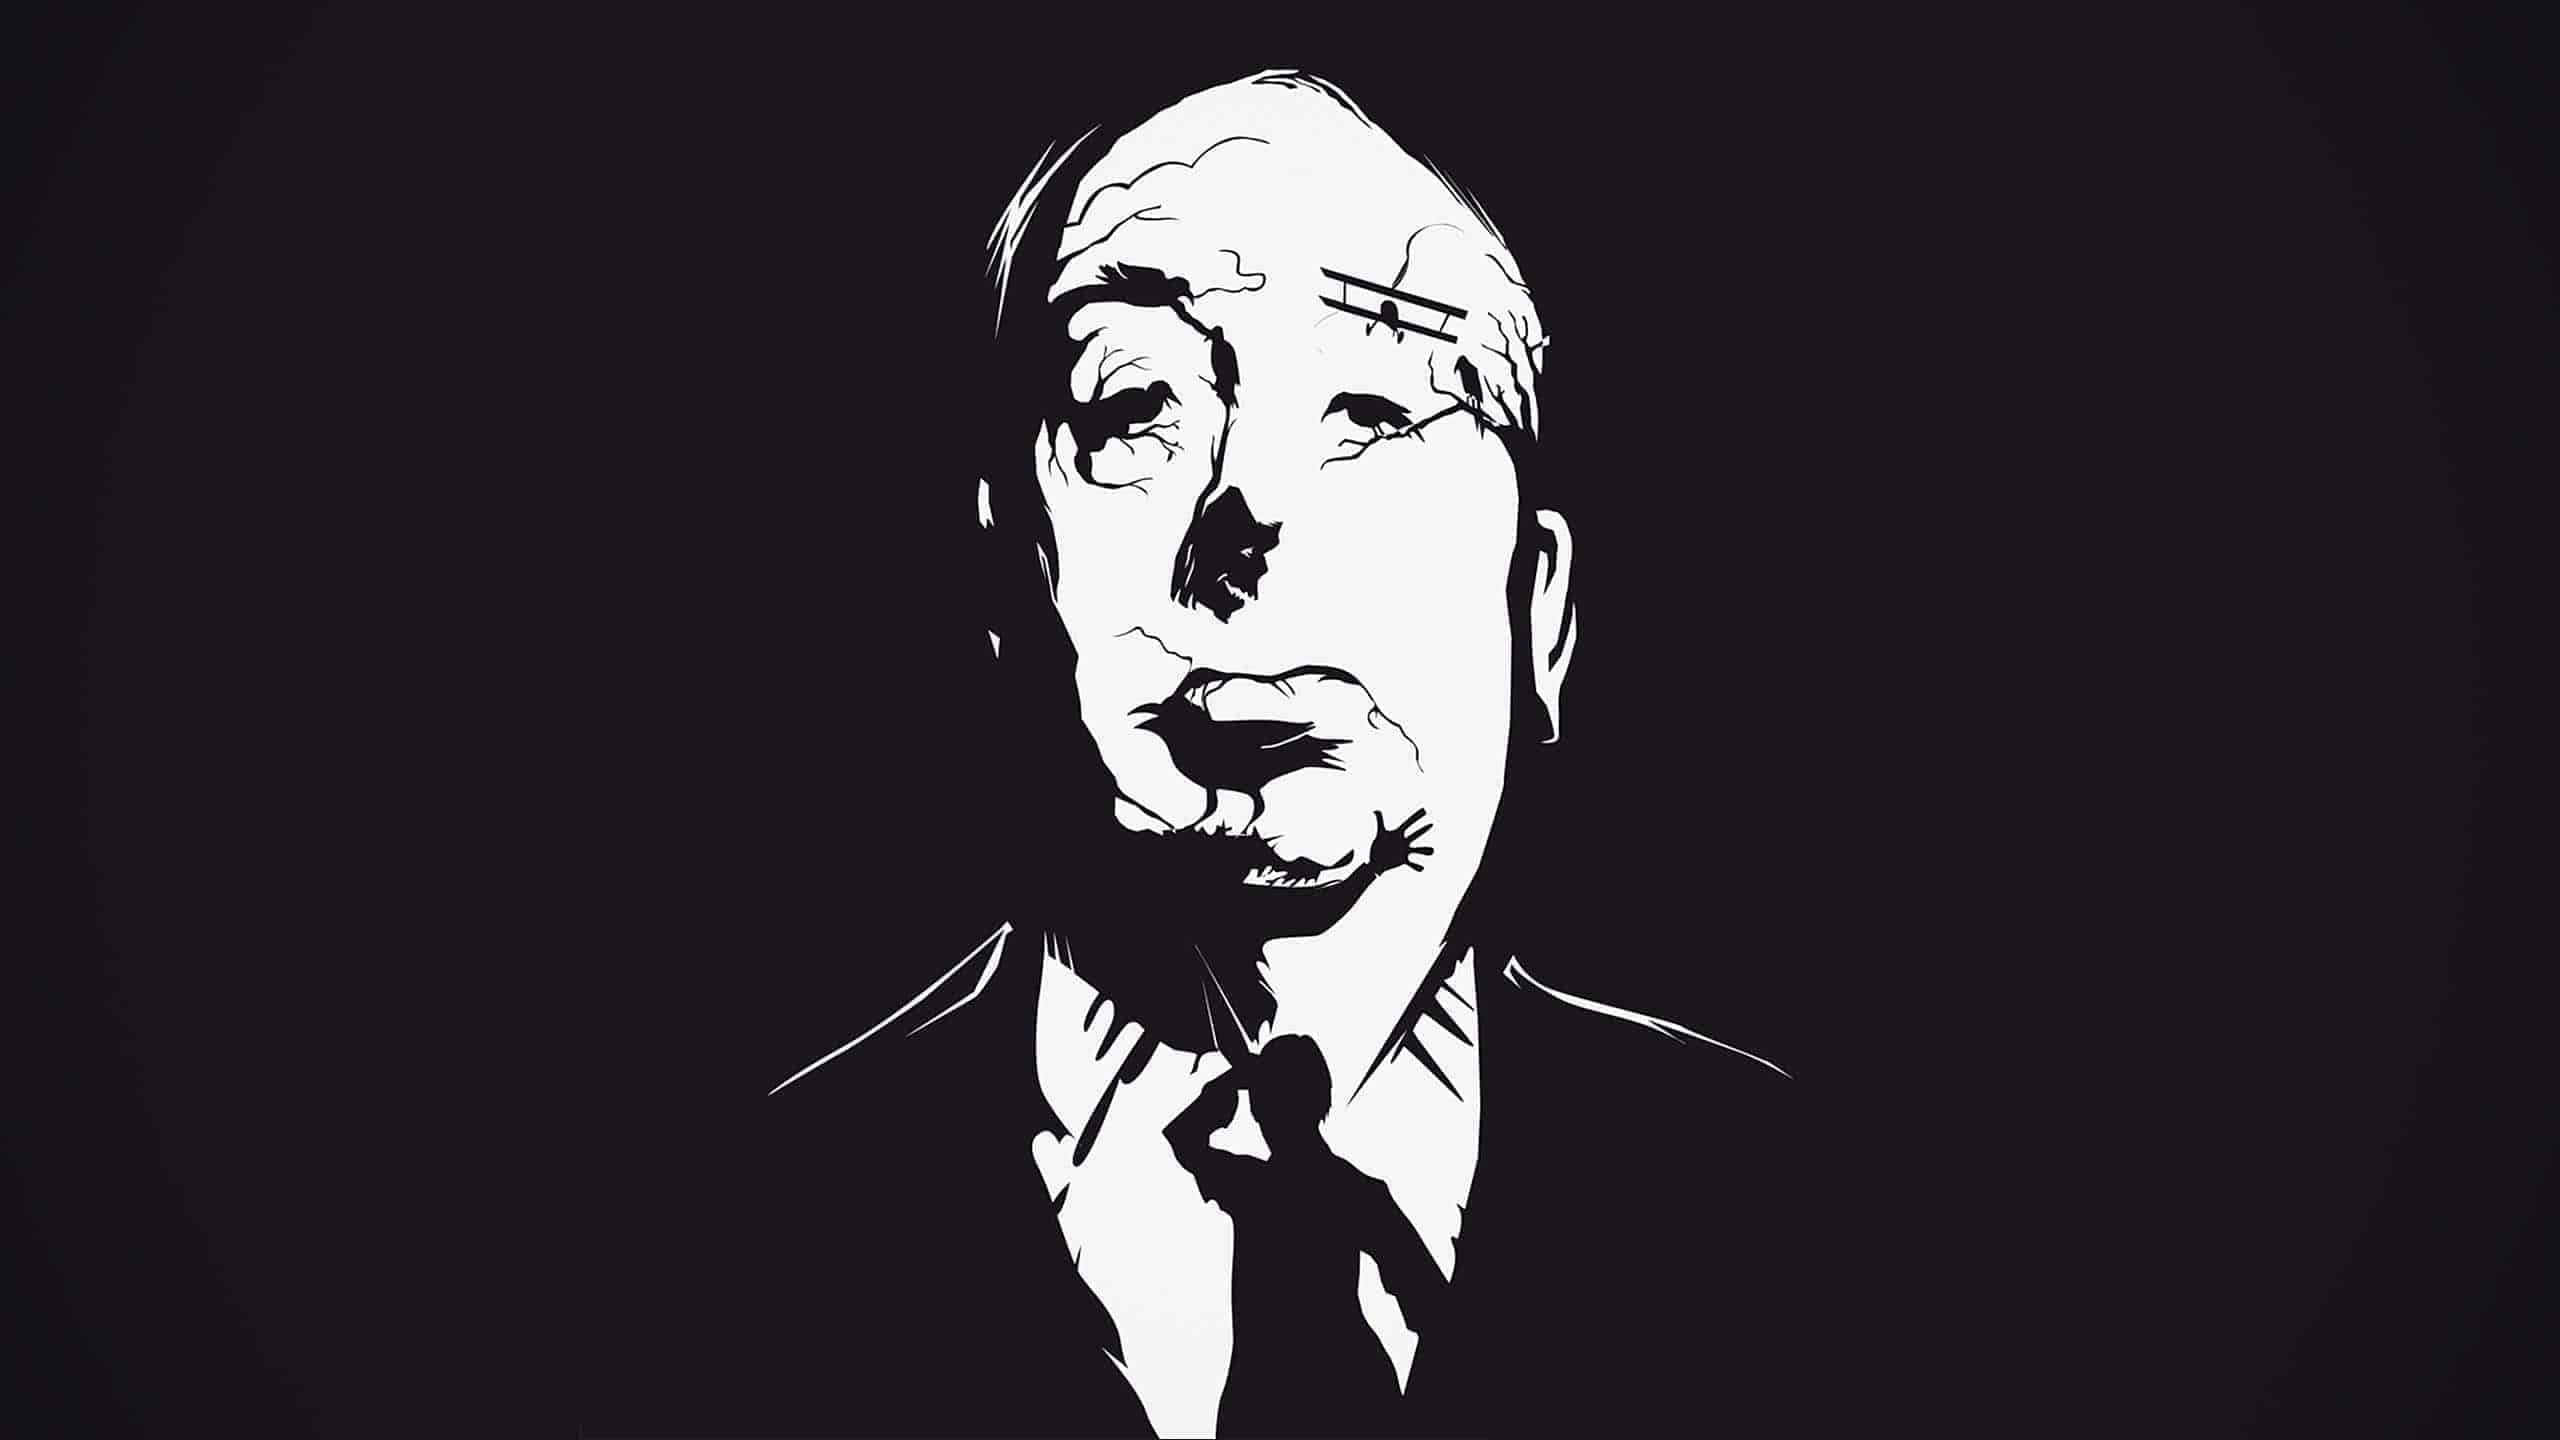 2560x1440 - Alfred Hitchcock Wallpapers 12